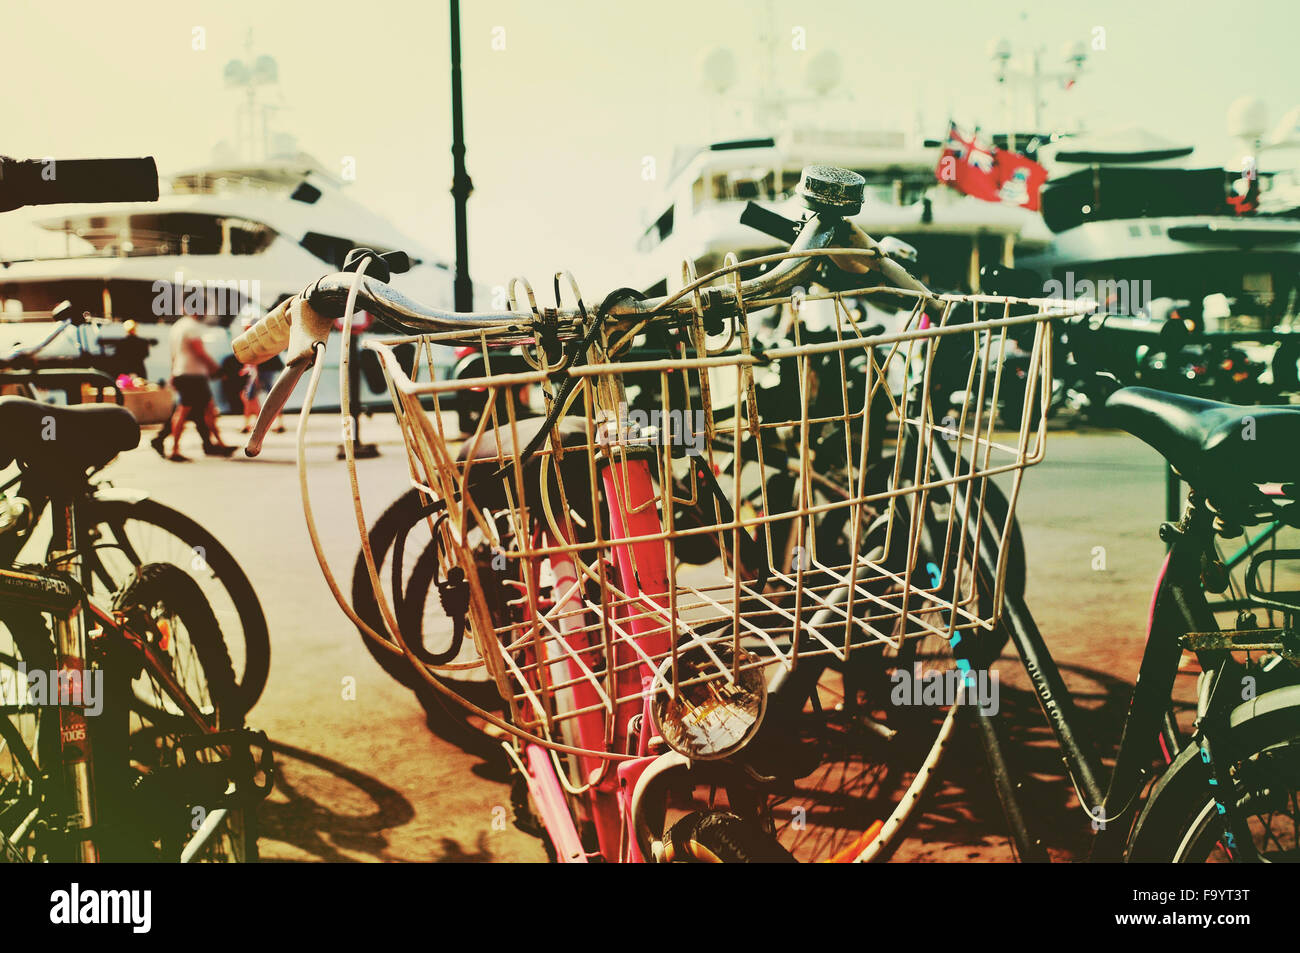 closeup of some bicycles parked in the port of Saint-Tropez, France, with a filtered effect - Stock Image